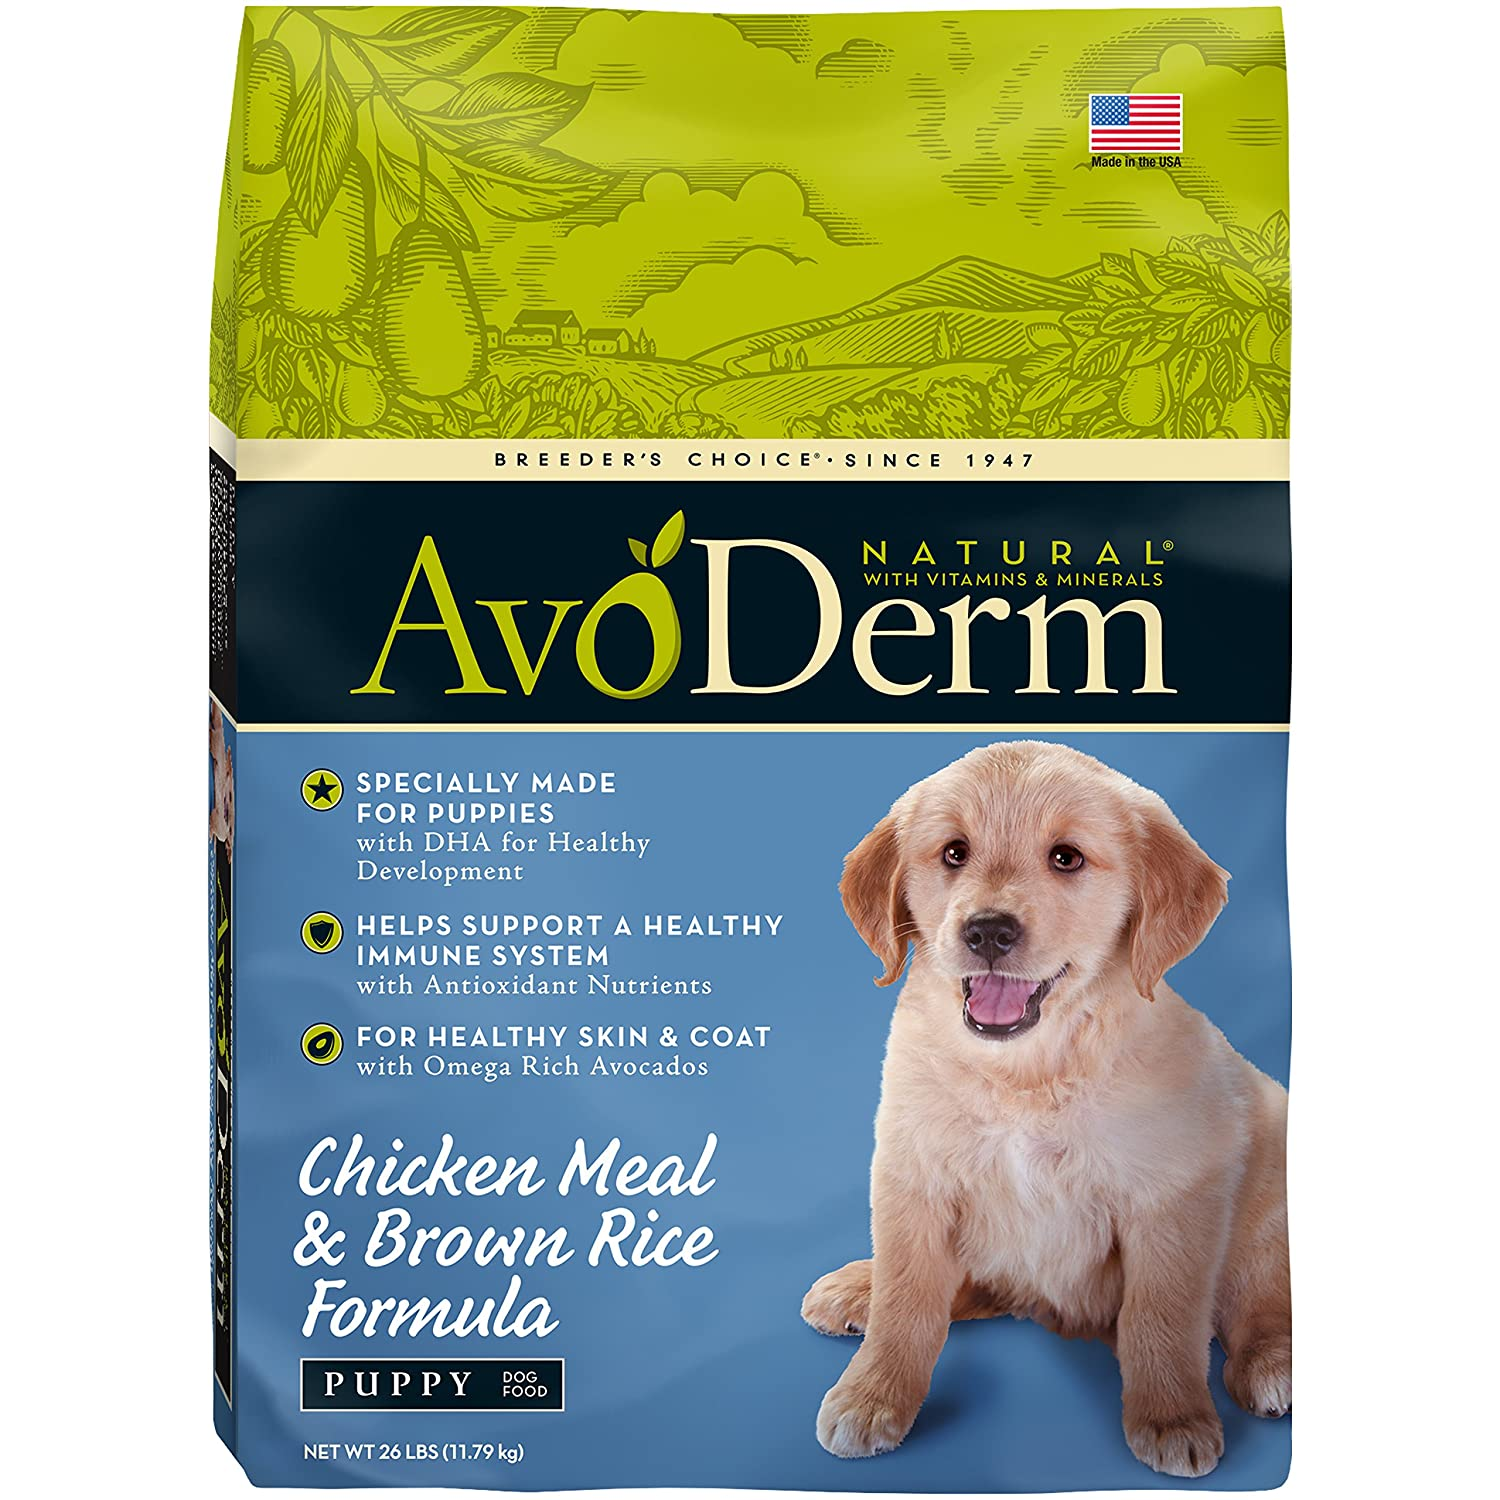 AvoDerm Natural Puppy Dry Wet Dog Food, DHA For Brain Eye Development, Chicken Brown Rice Formula